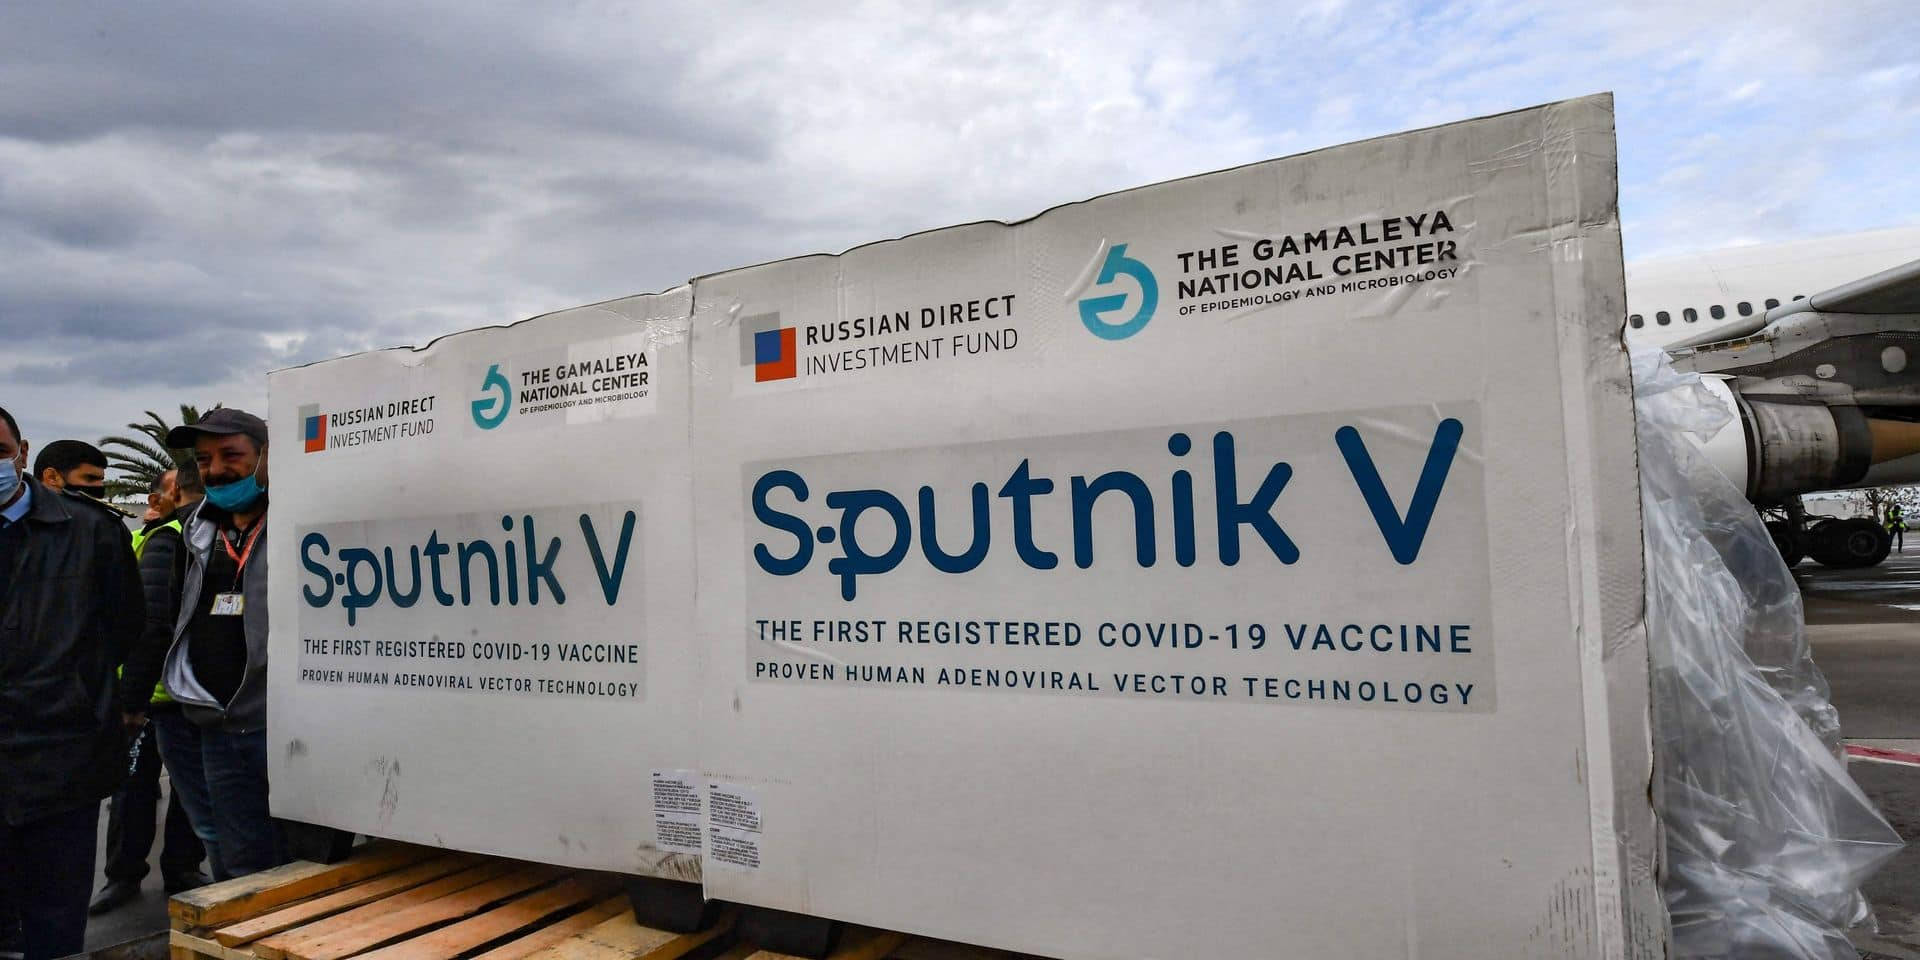 La Russie a des accords de production de Spoutnik V en Europe, notamment en France